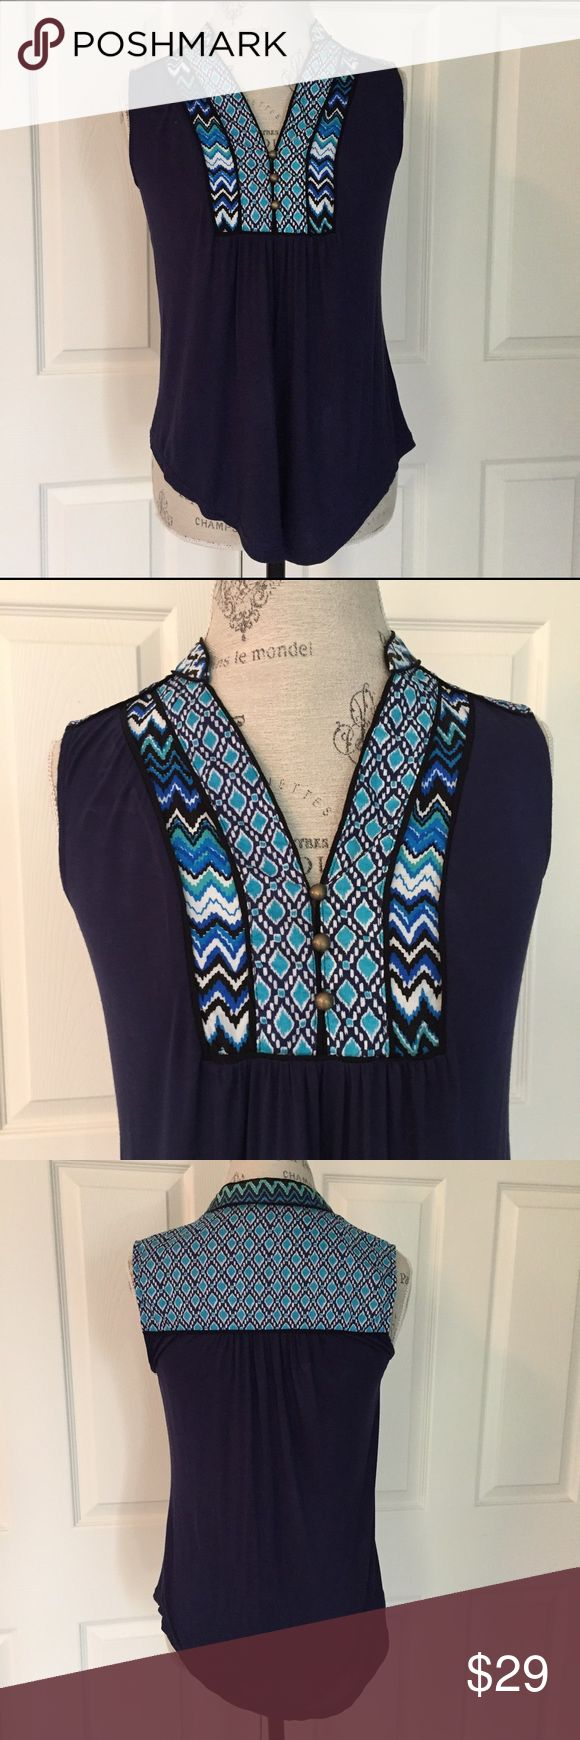 Stitch Fix Mixed Material Boho Inspired Top so cute and boho inspired! mixed material sleeveless curved hem knit top with boho inspired detail and burnished buttons by Market&Spruce for Stitch Fix. size small. very good pre-loved condition with just very light pilling as seen in closeup photo. Stitch Fix Tops